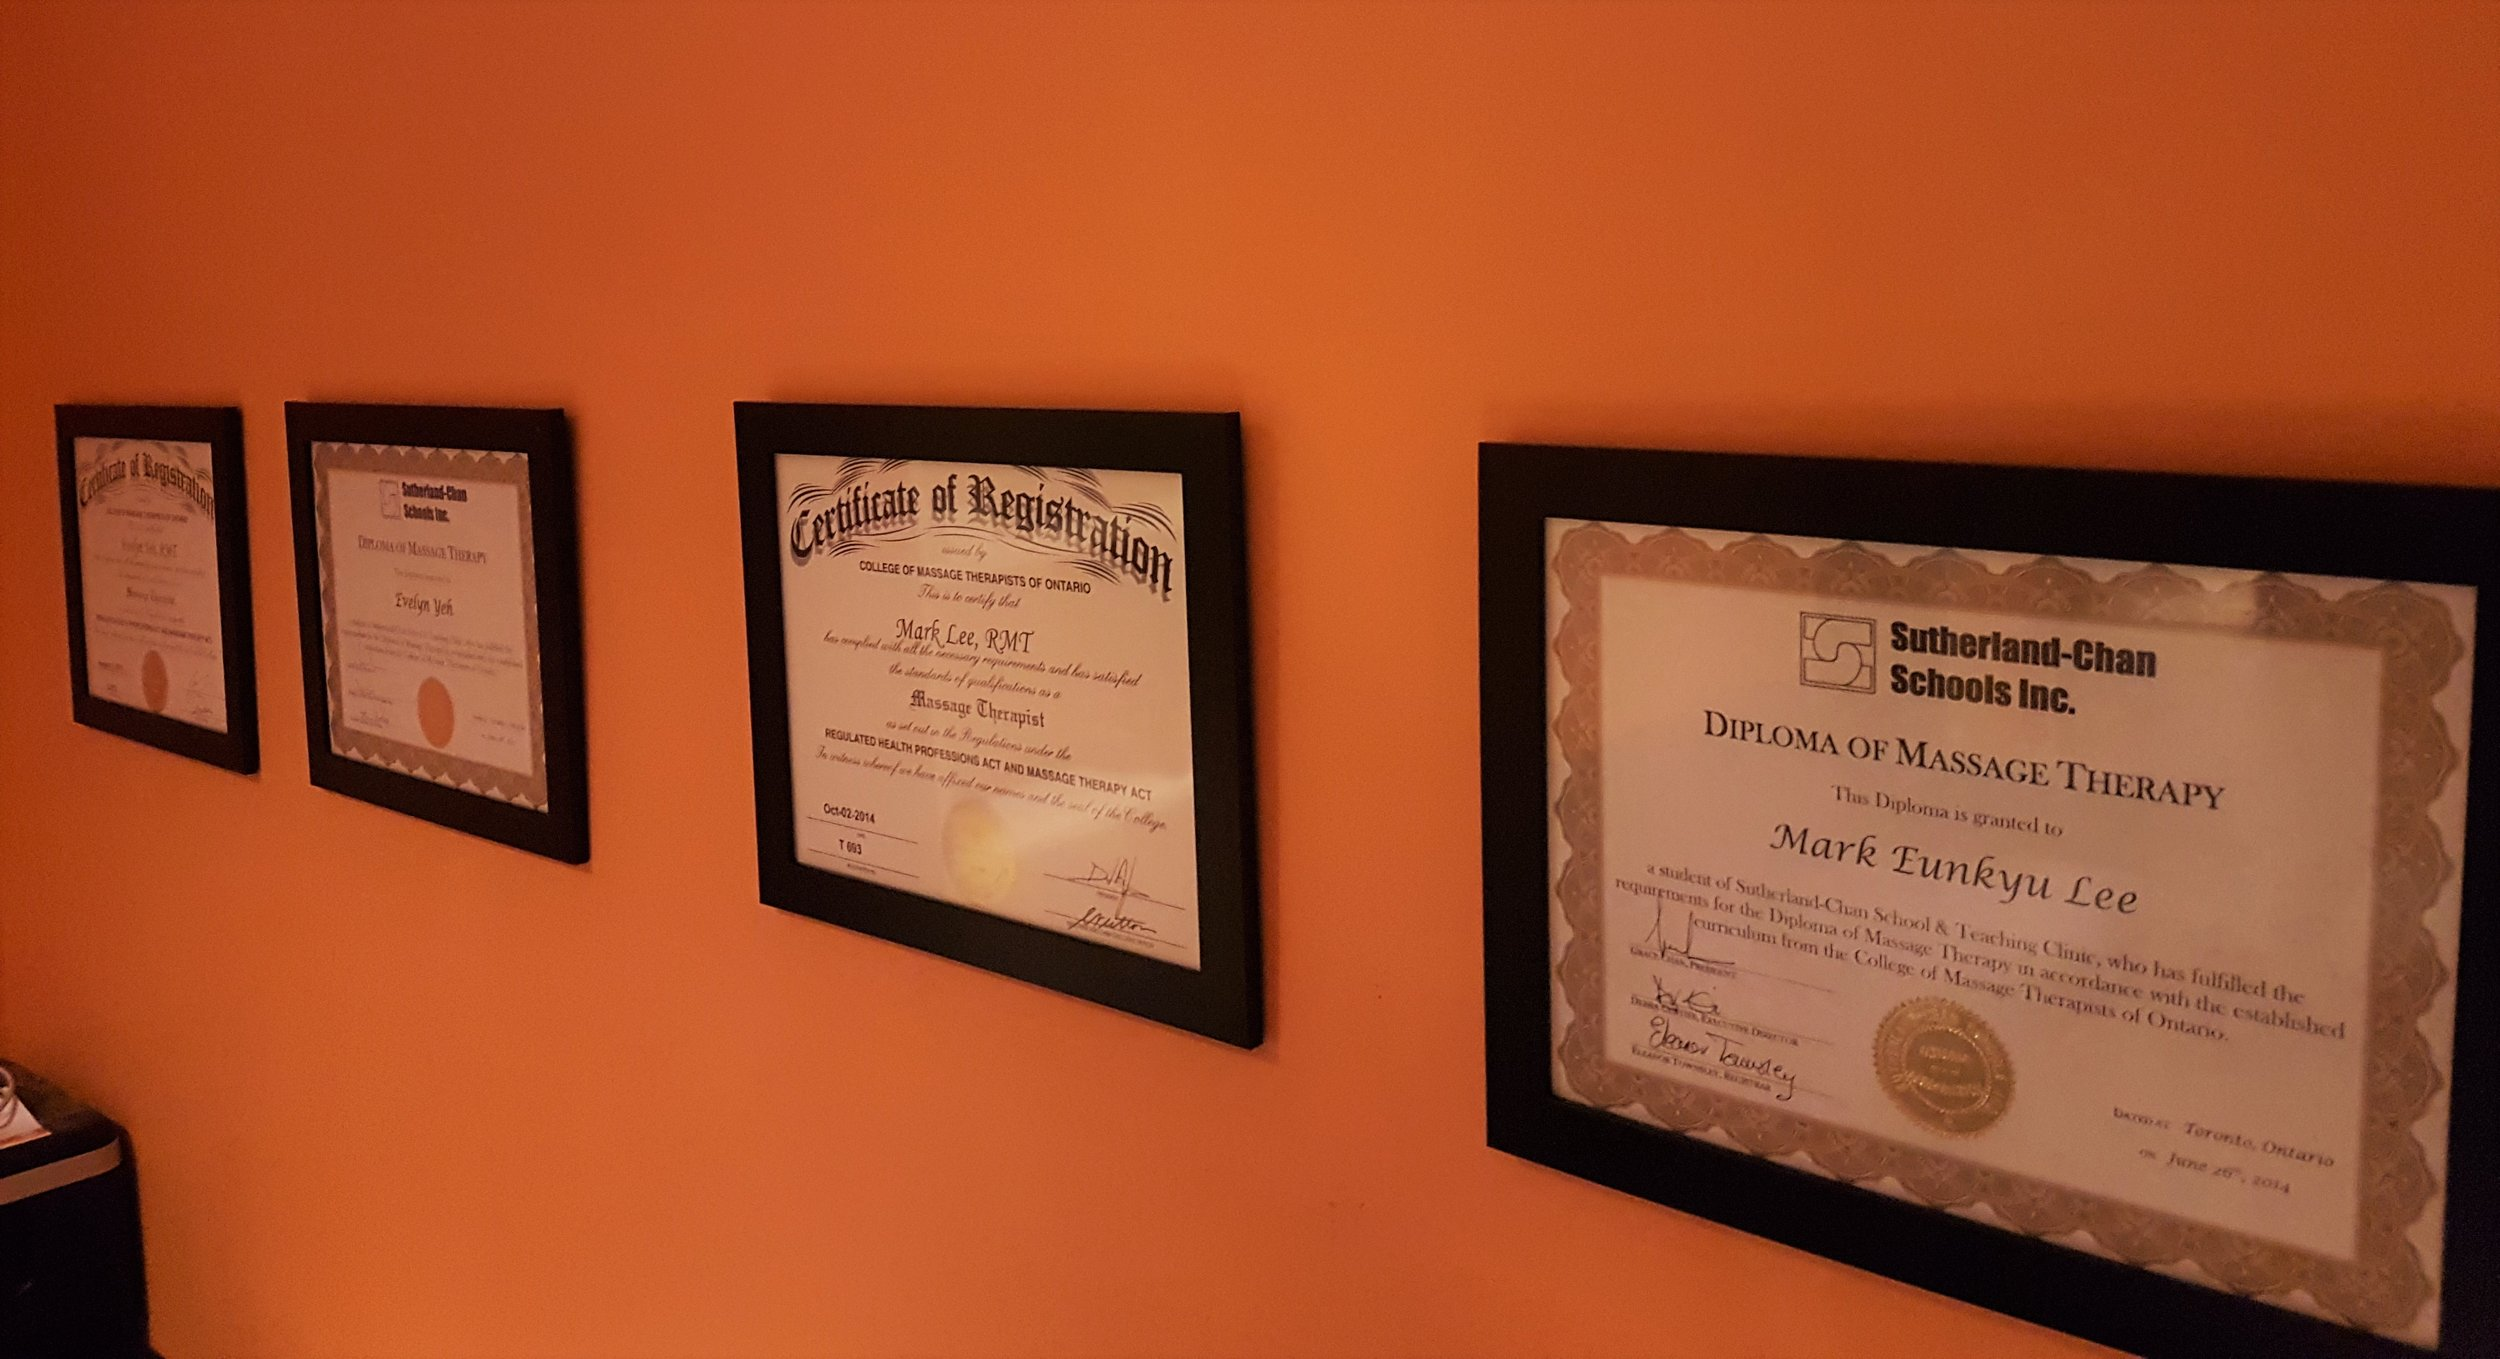 Massage Therapist's Diplomas